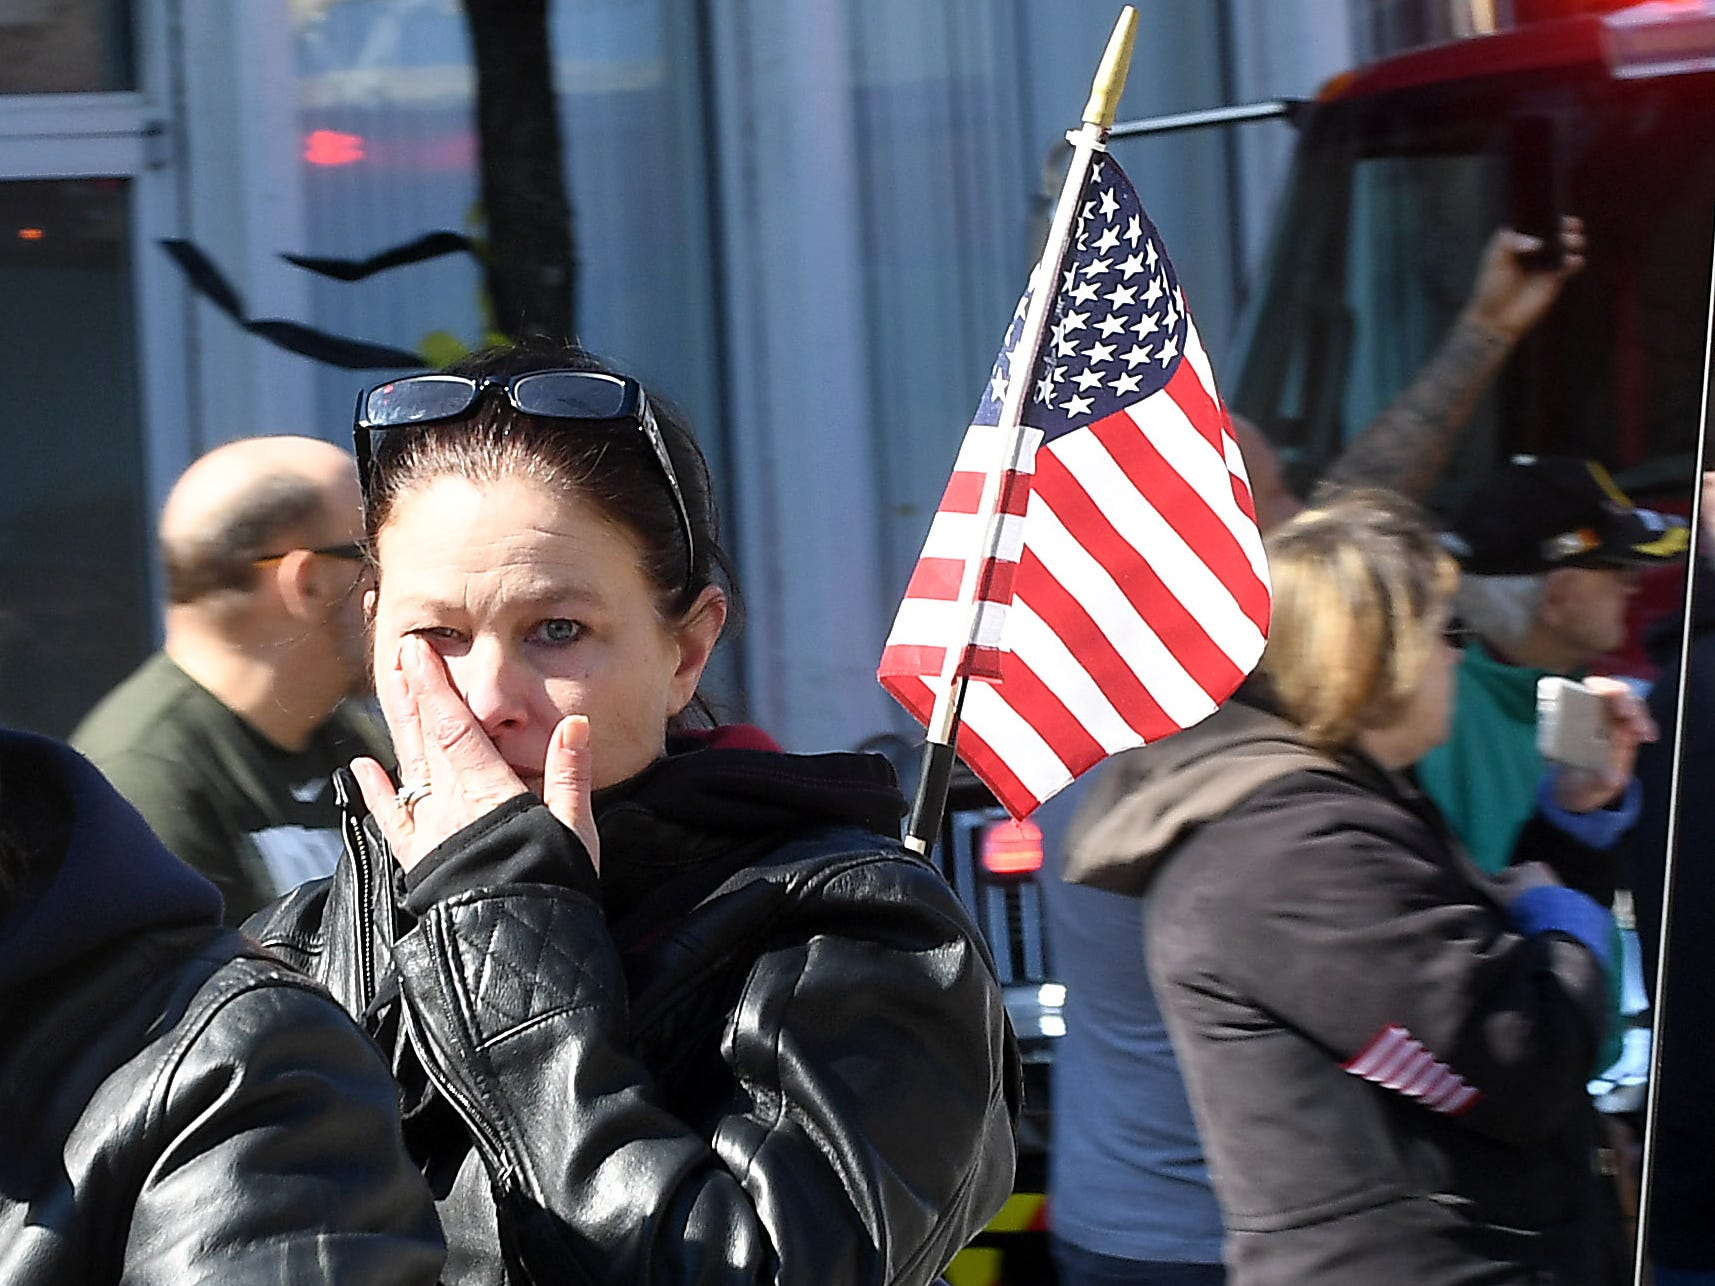 More than 300 motorcyclists ride through Lancaster while escorting the hearse carrying U.S. Army Sgt. Joseph Collette. The procession traveled from Rickenbacker International Airport in Columbus to Lancaster.